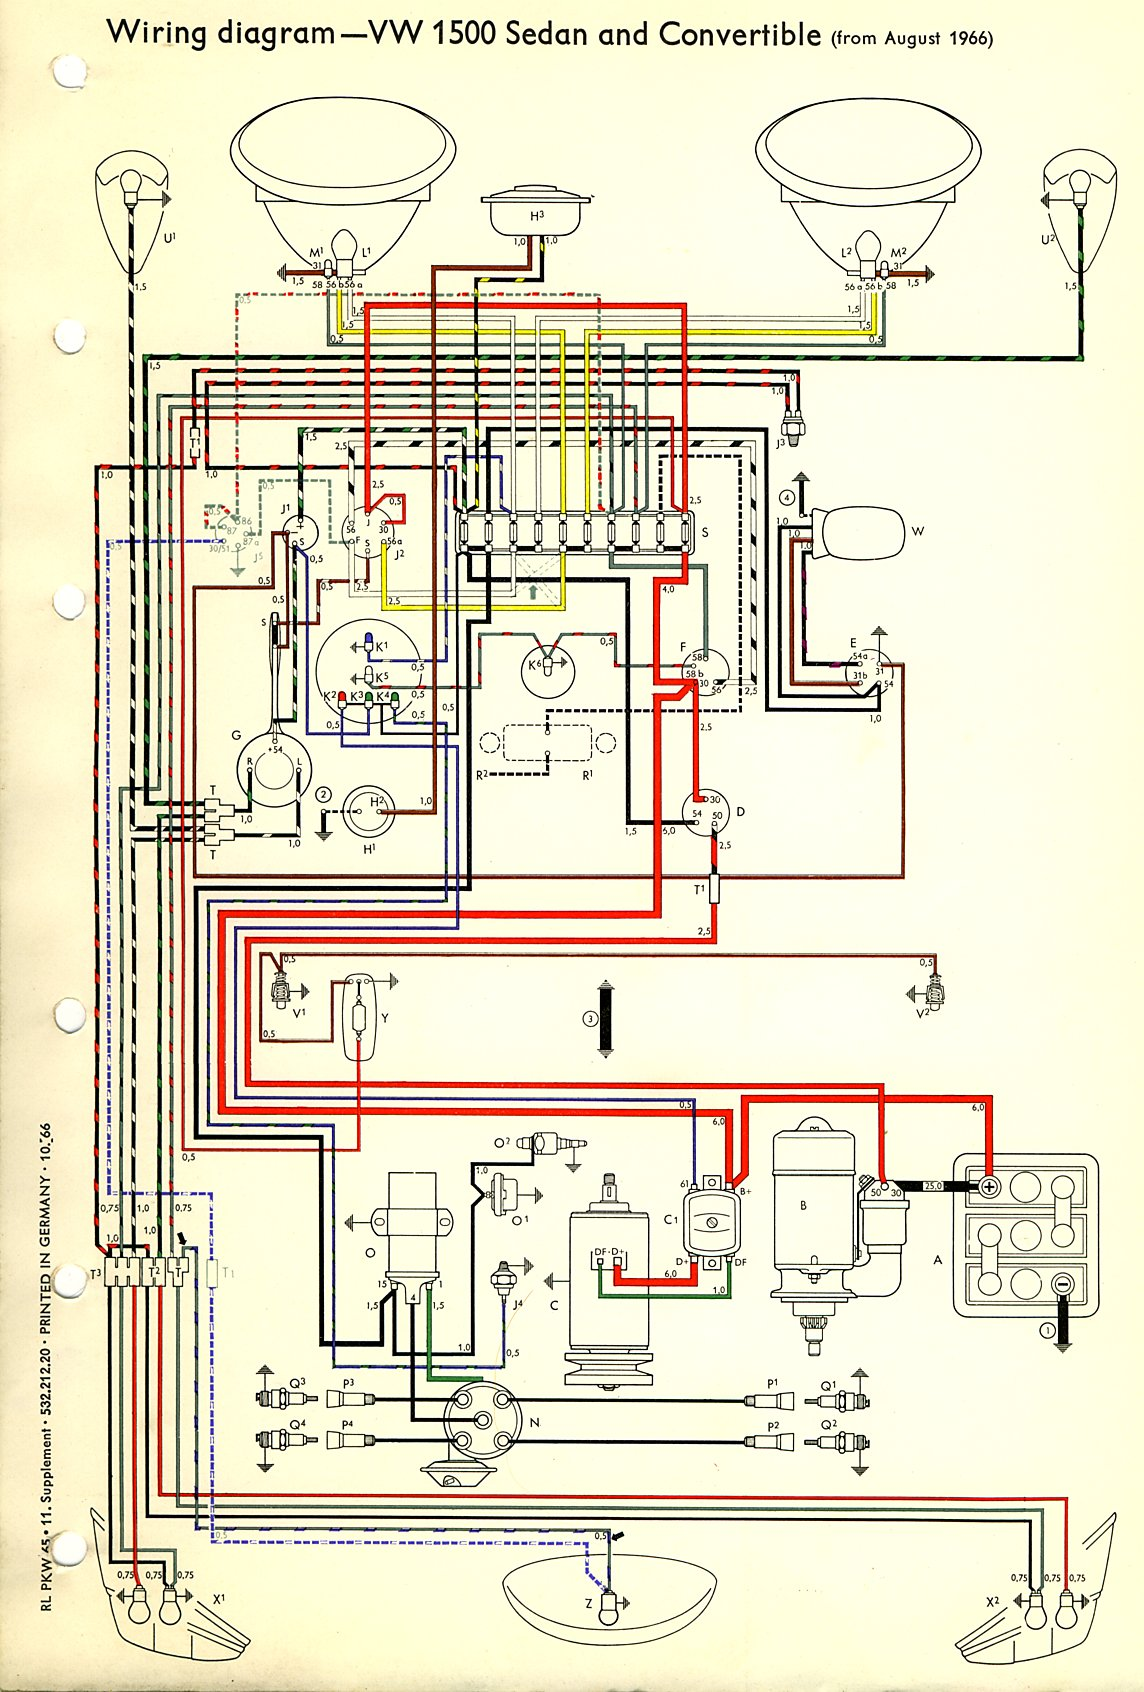 bug_67 1967 beetle wiring diagram thegoldenbug com 1960 vw bus wiring diagram at fashall.co